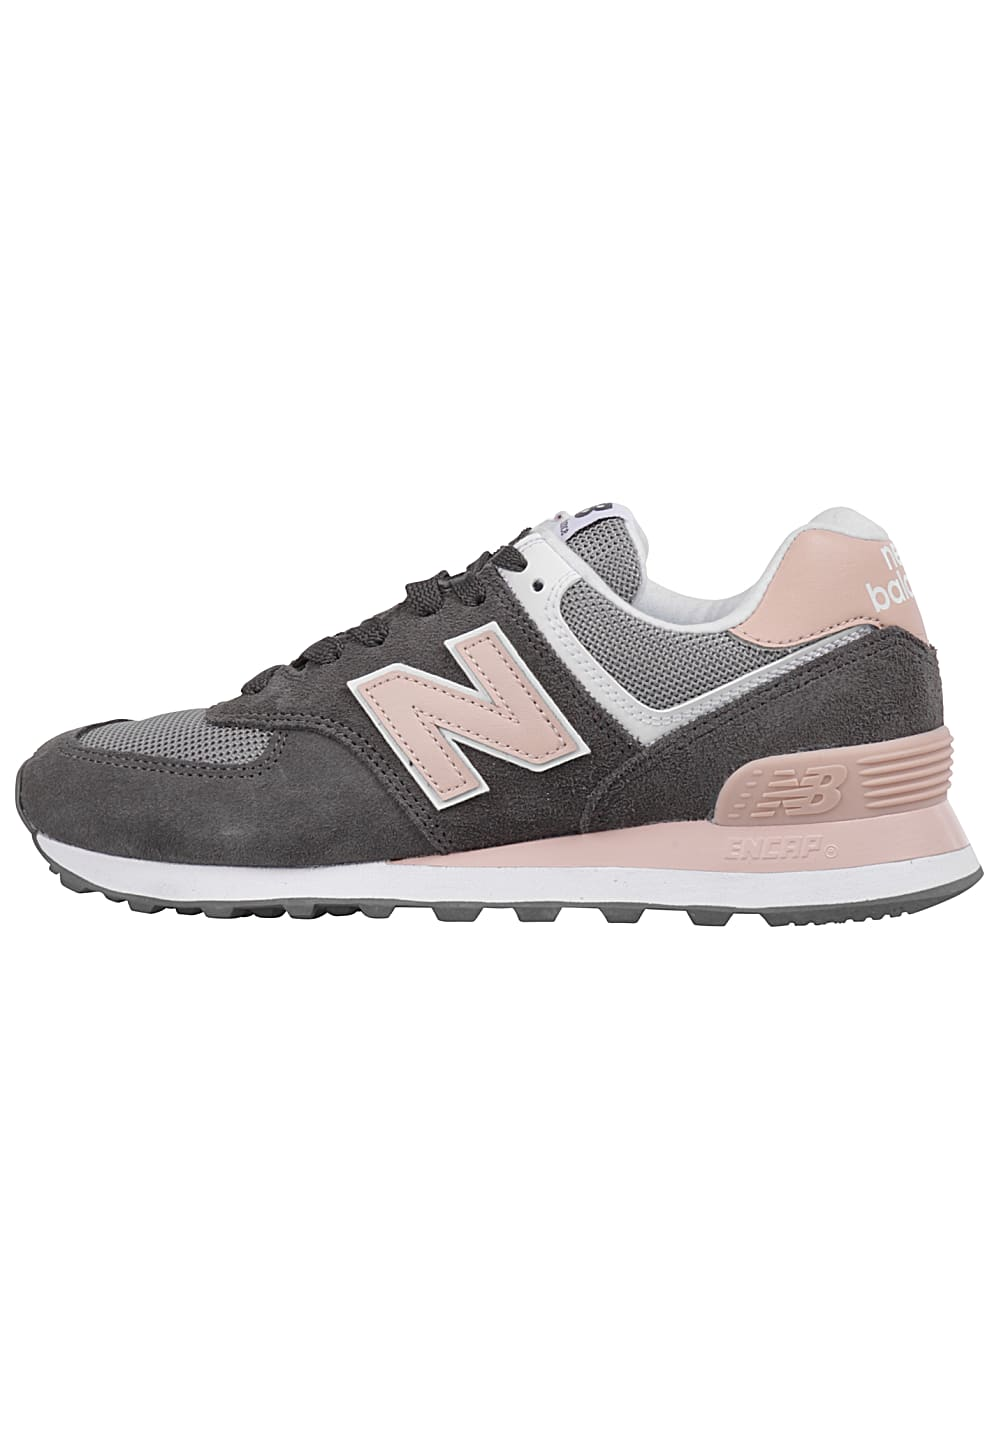 NEW BALANCE WL574 - Sneakers for Women - Grey